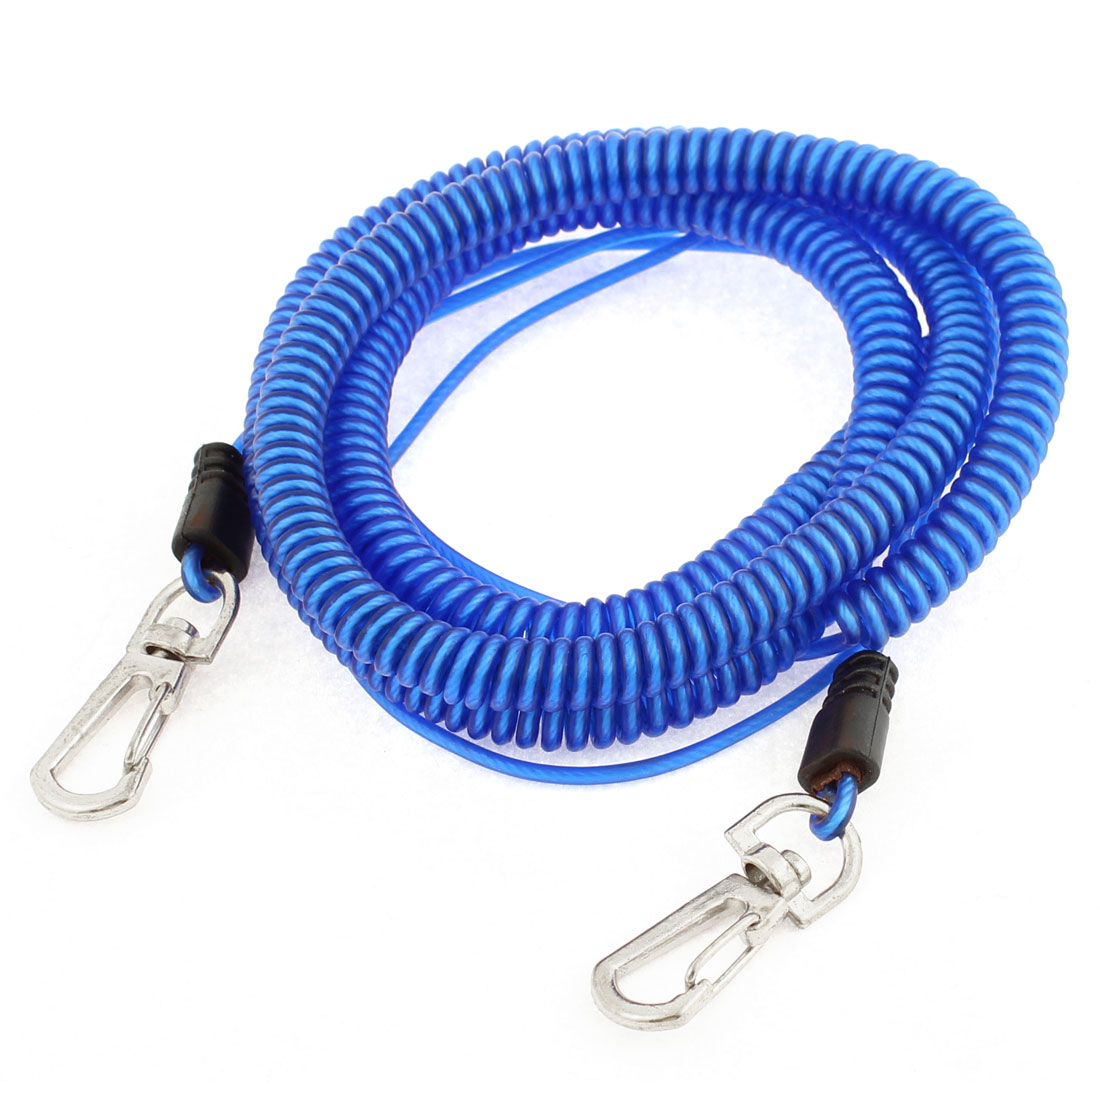 26Ft 8m Long Stretchy Coiled Fishing Lanyard Rope Safety Cable Cord Double Lobster Hook Blue